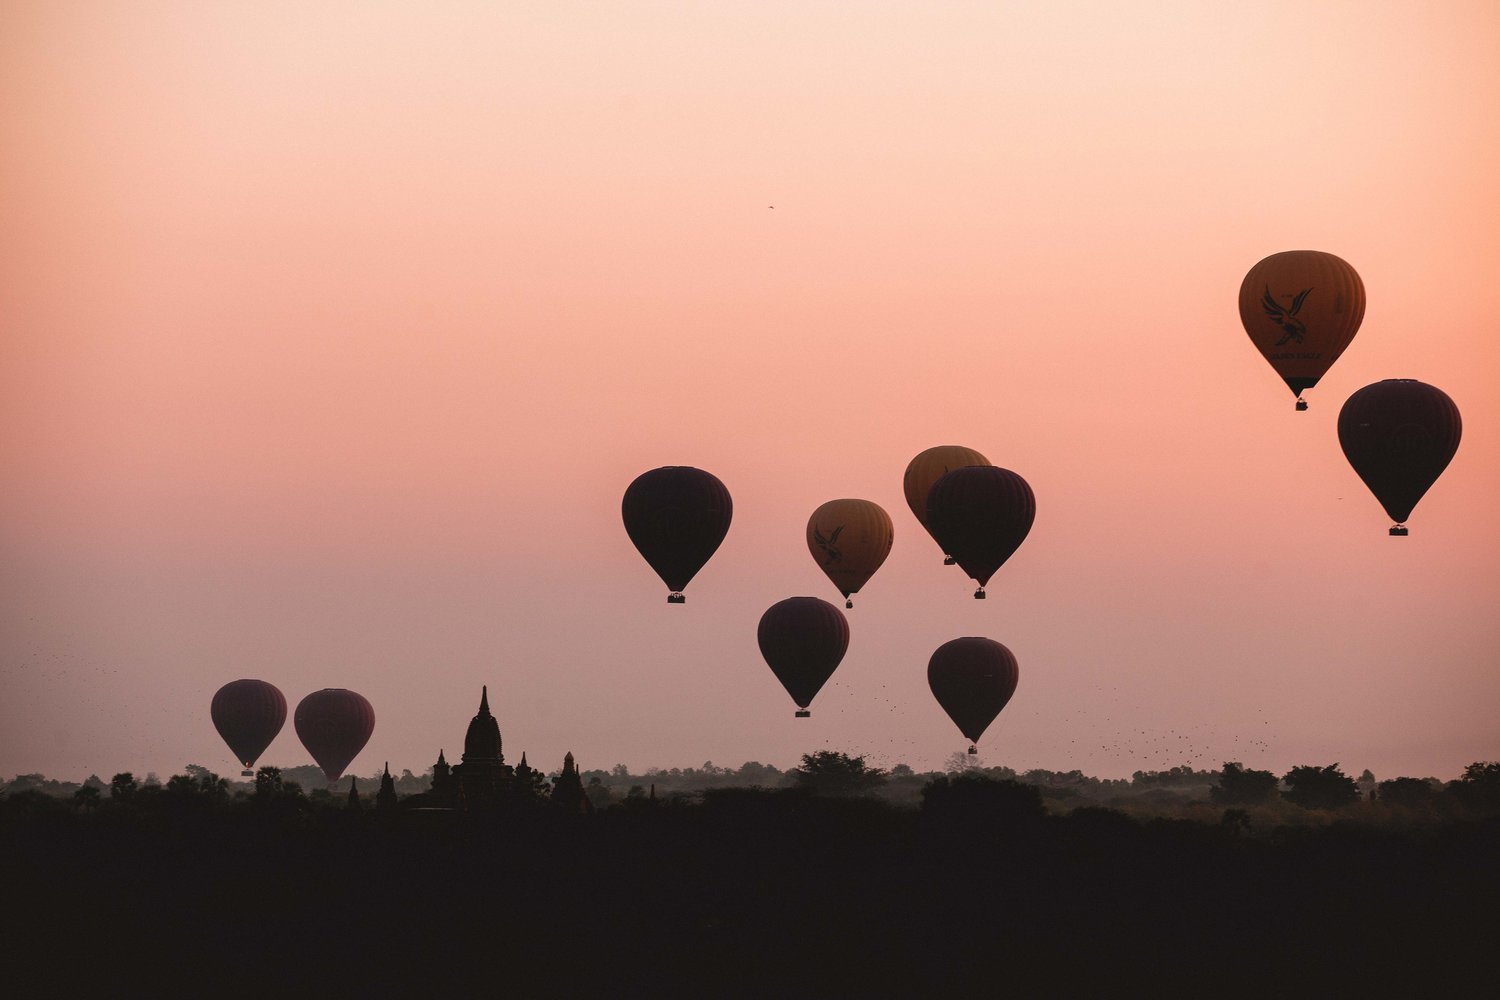 sunrise+in+bagan-1352.jpg